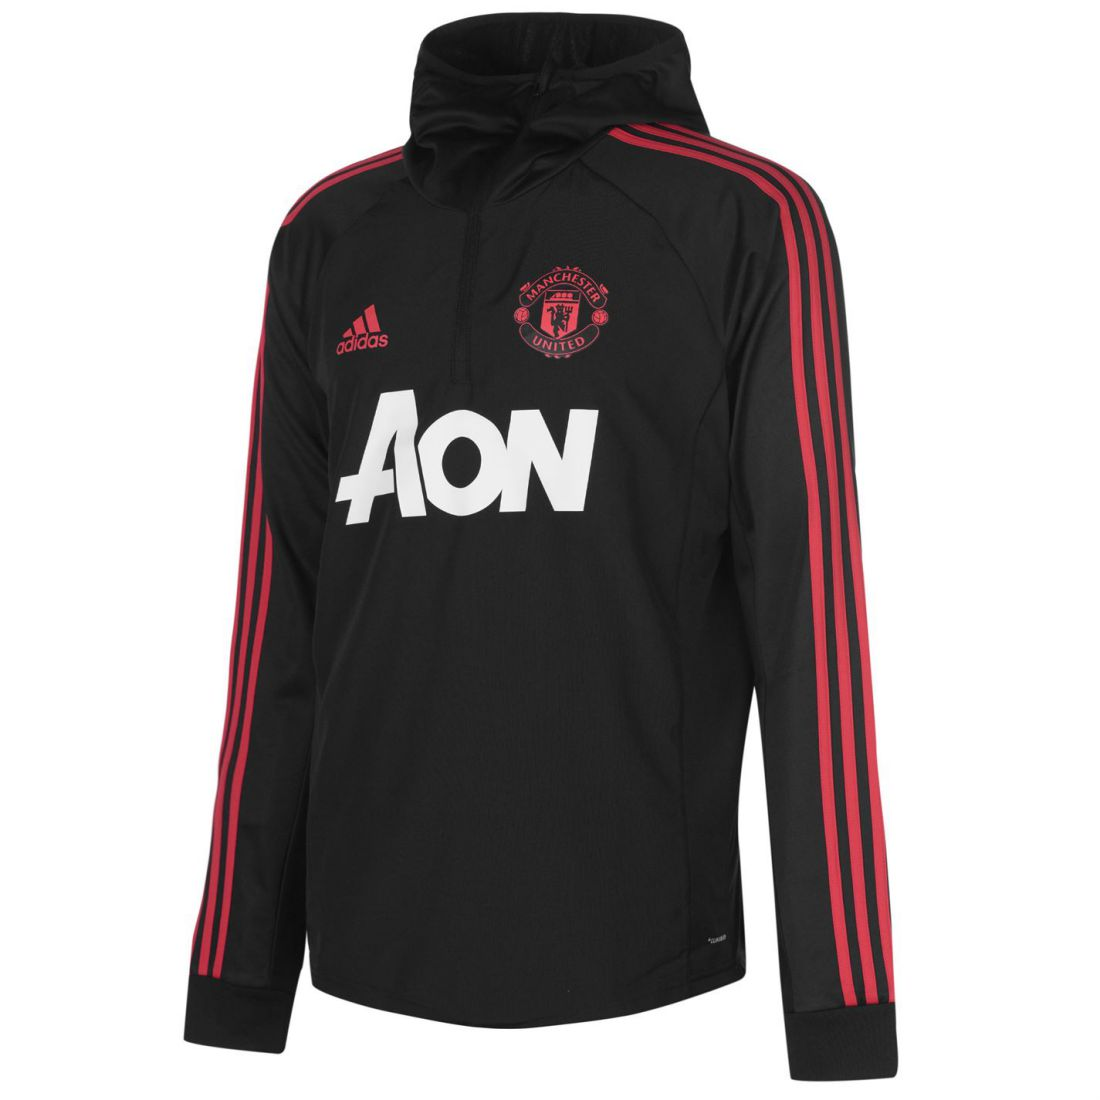 Adidas Mens Manchester United Warm Up Top 2018 19 Licensed Performance Crew